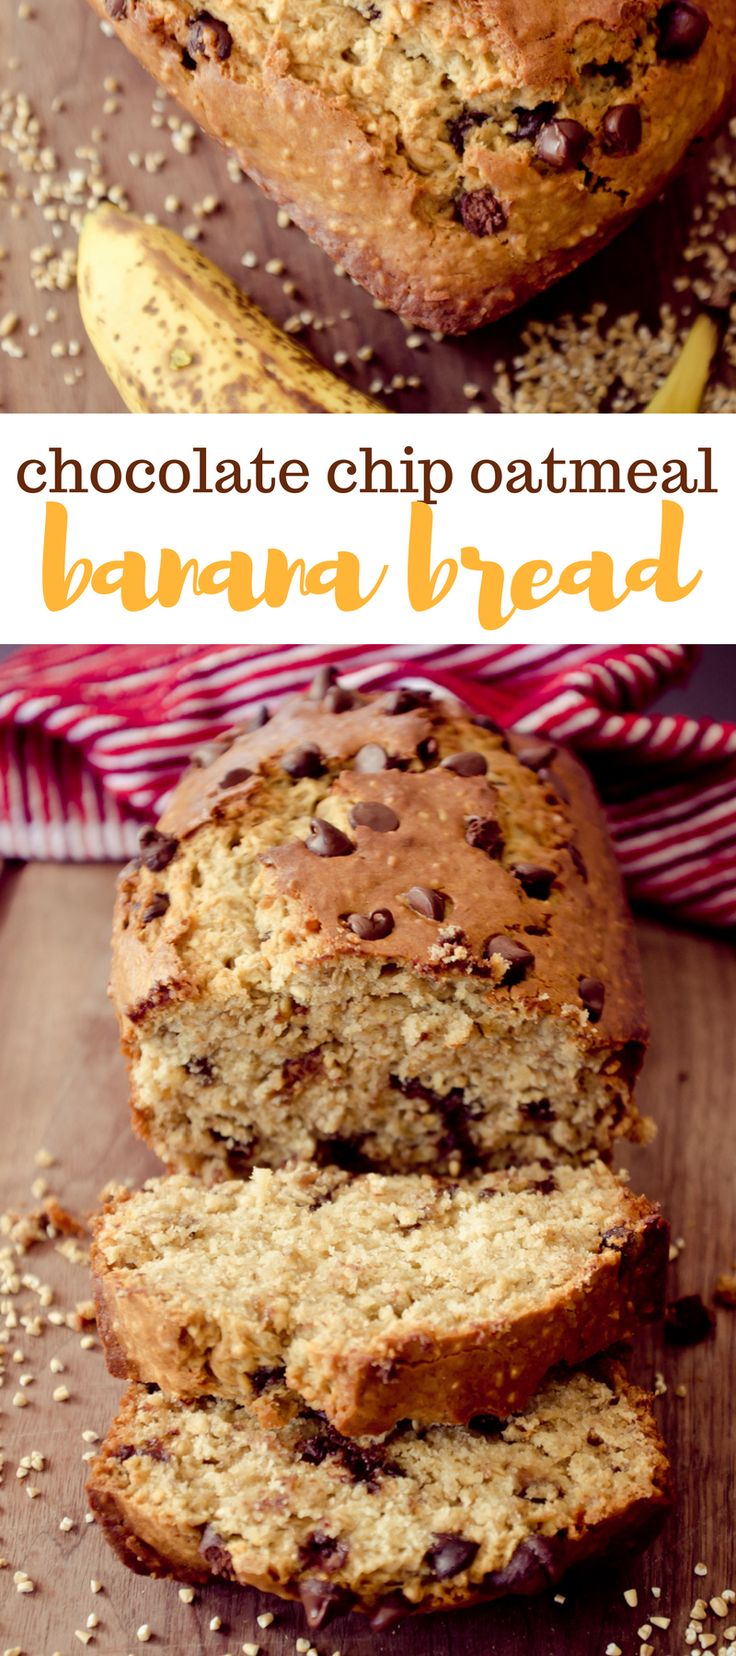 Start your morning on the right foot with this Chocolate Chip Oatmeal Banana Bread!